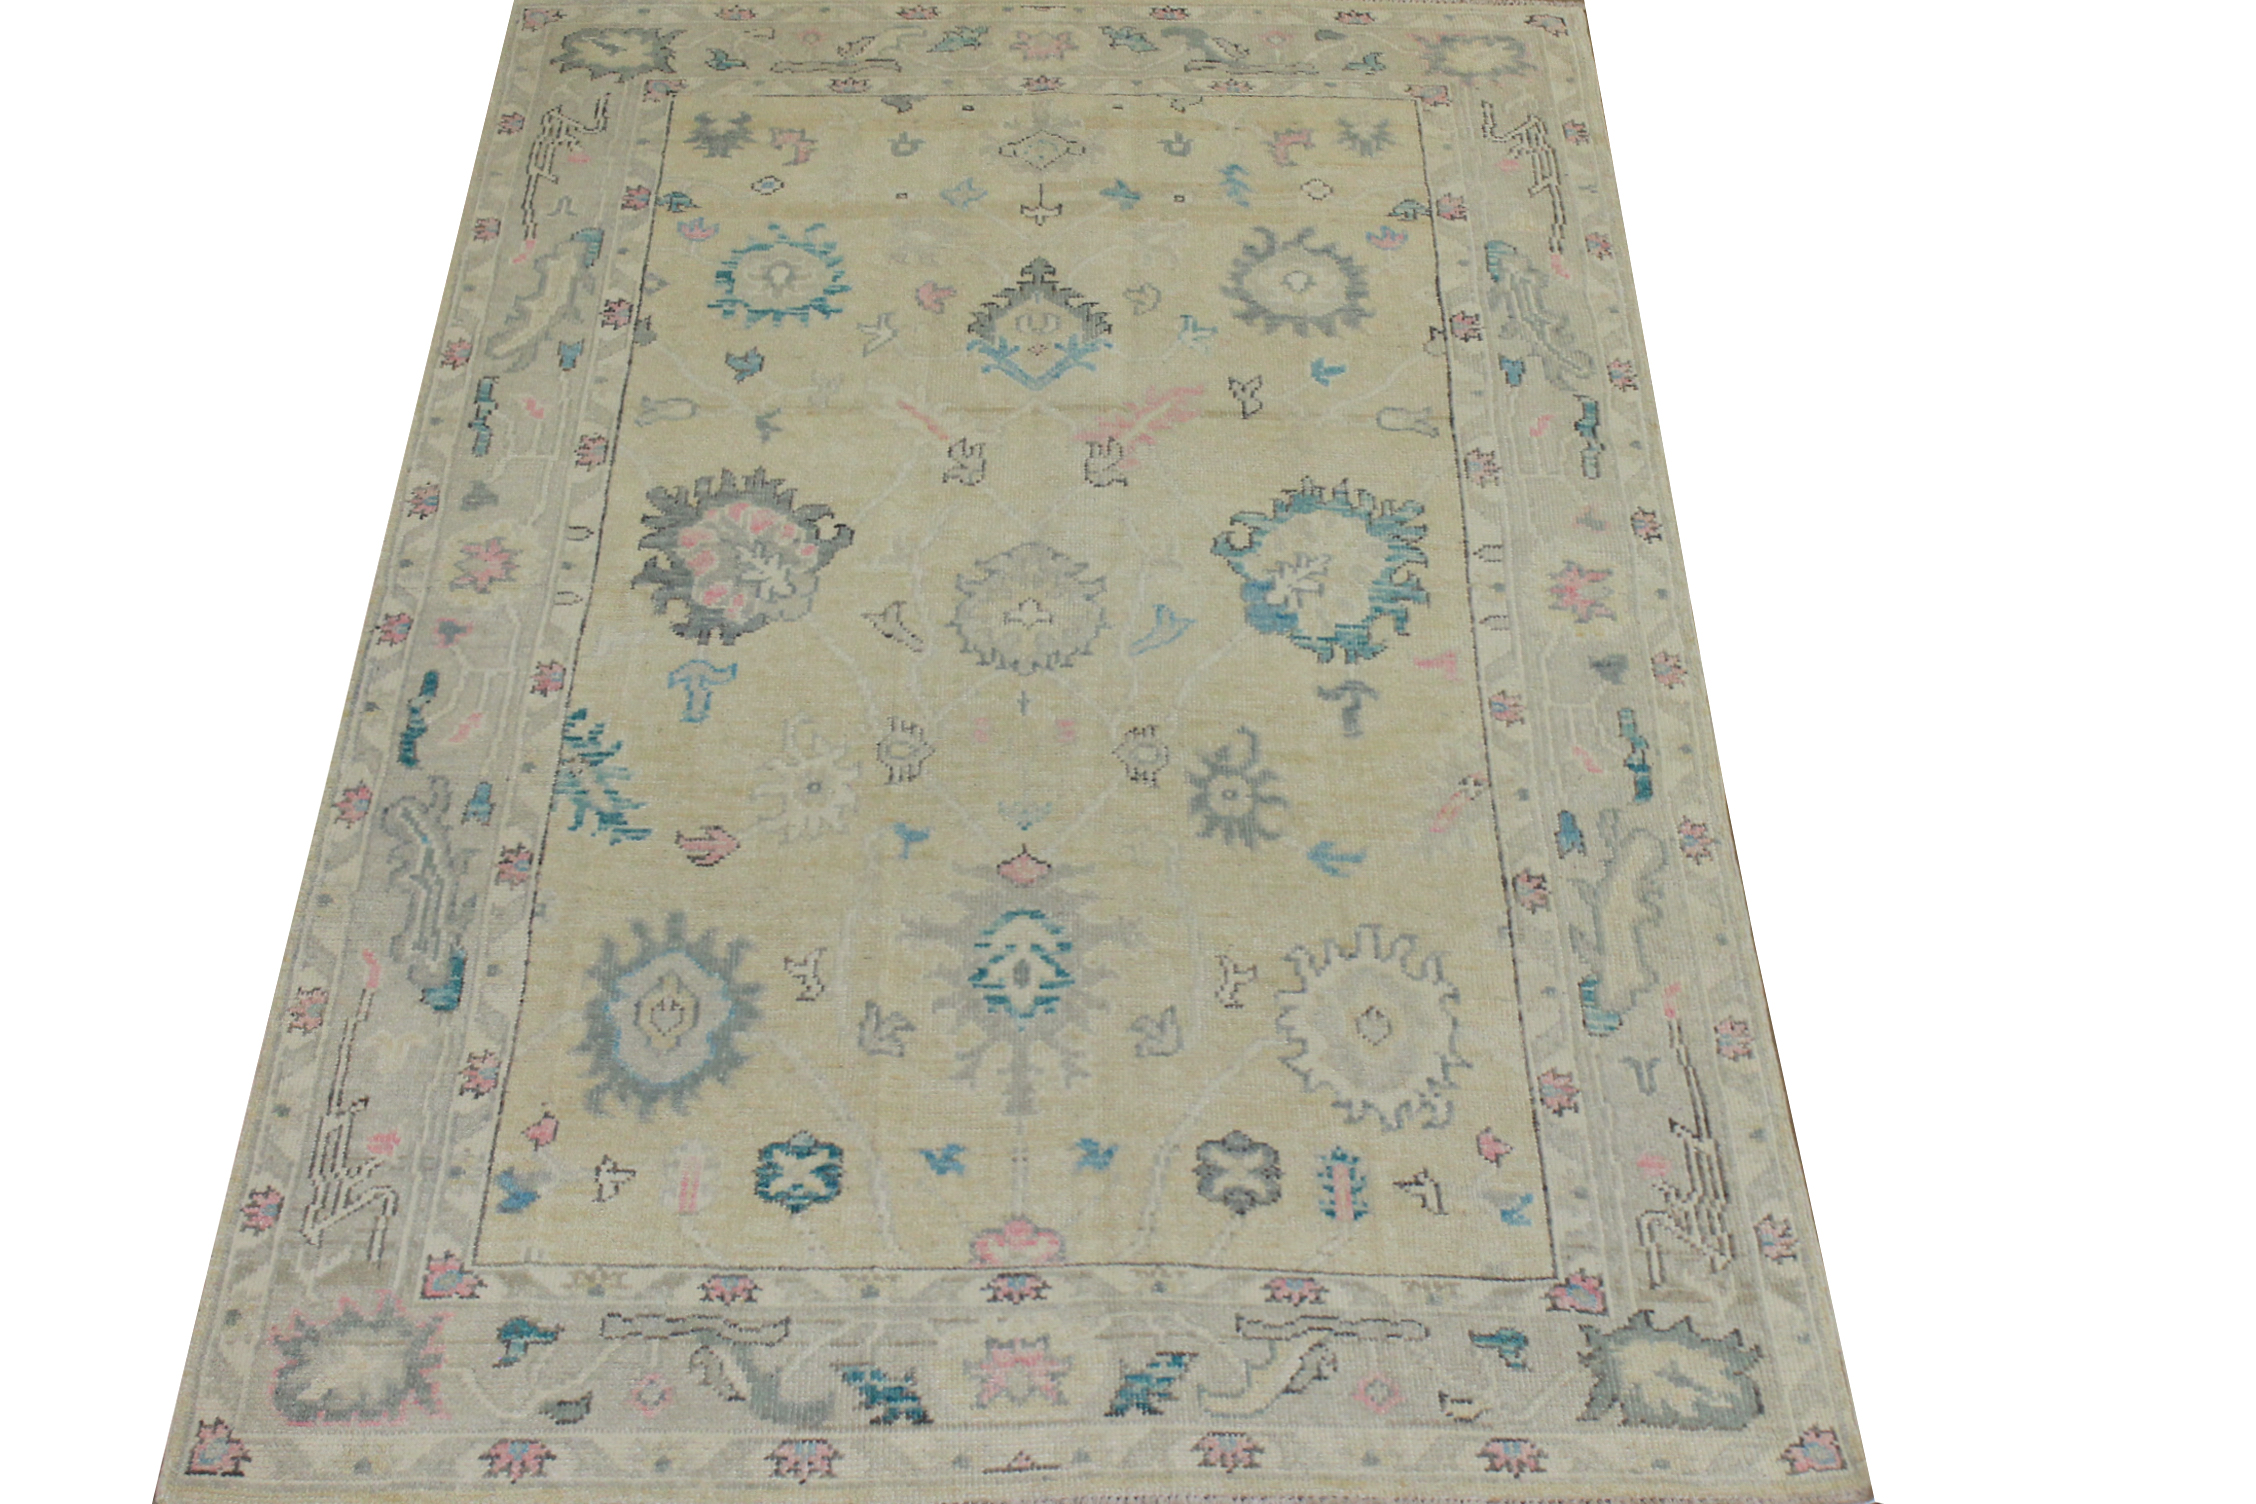 5x7/8 Oushak Hand Knotted Wool Area Rug - MR024428